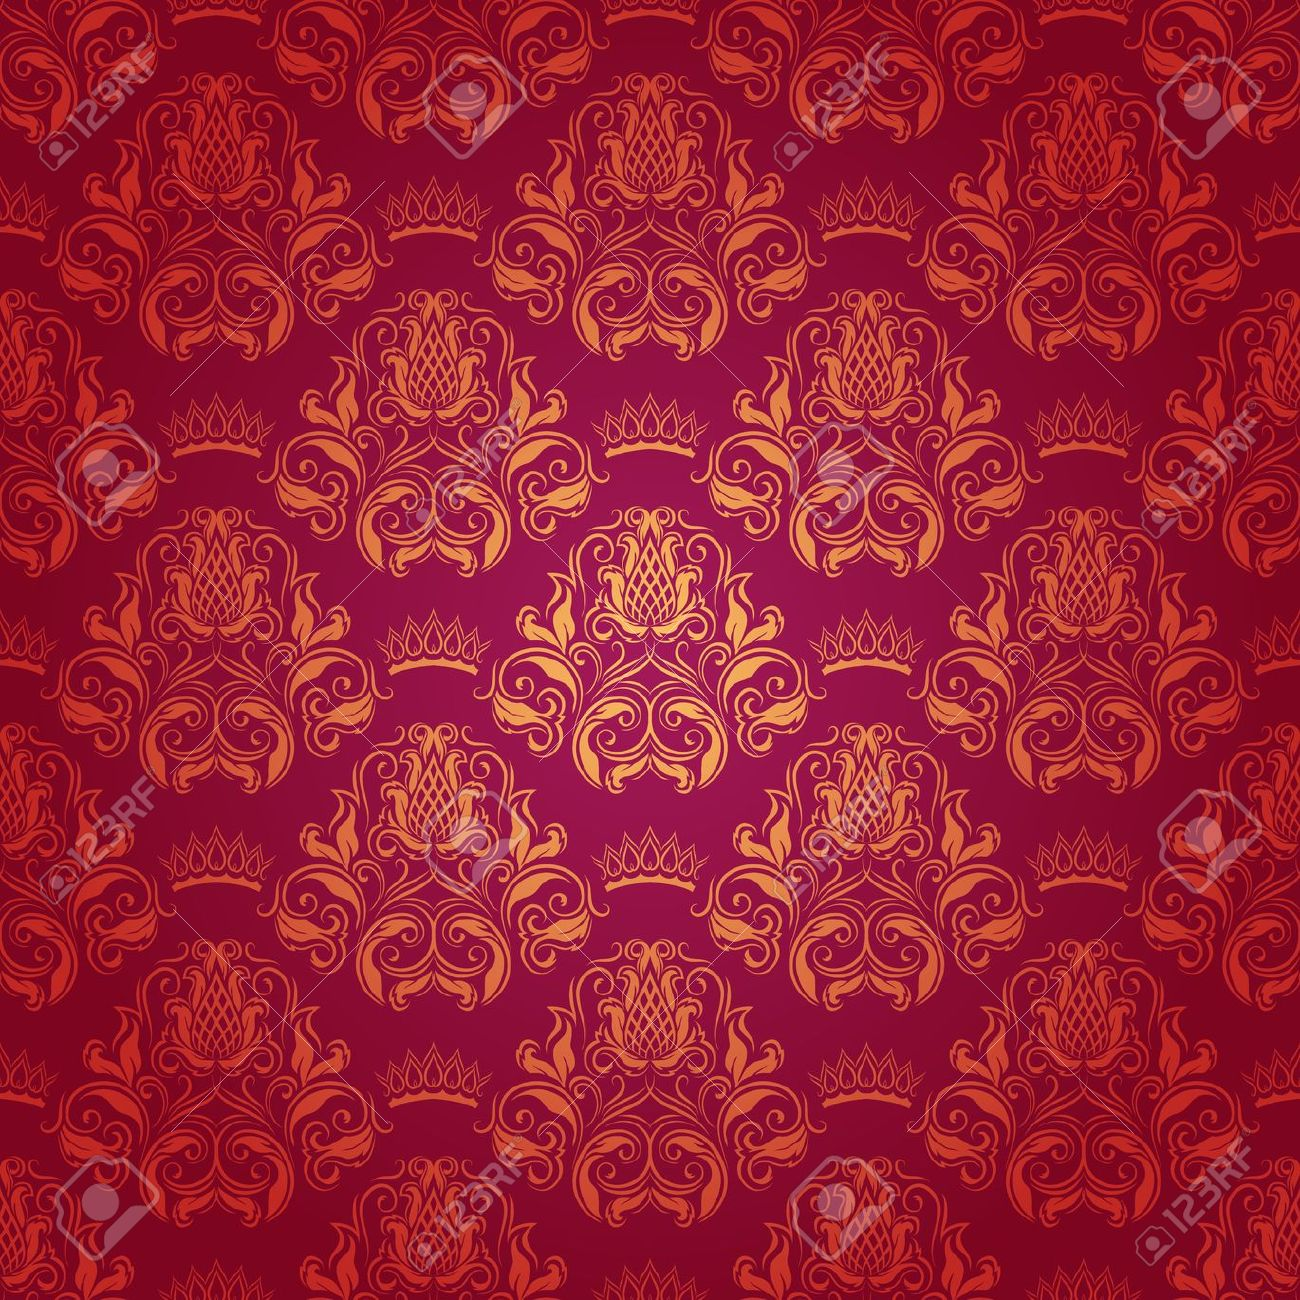 Download Royal Red Wallpaper Gallery